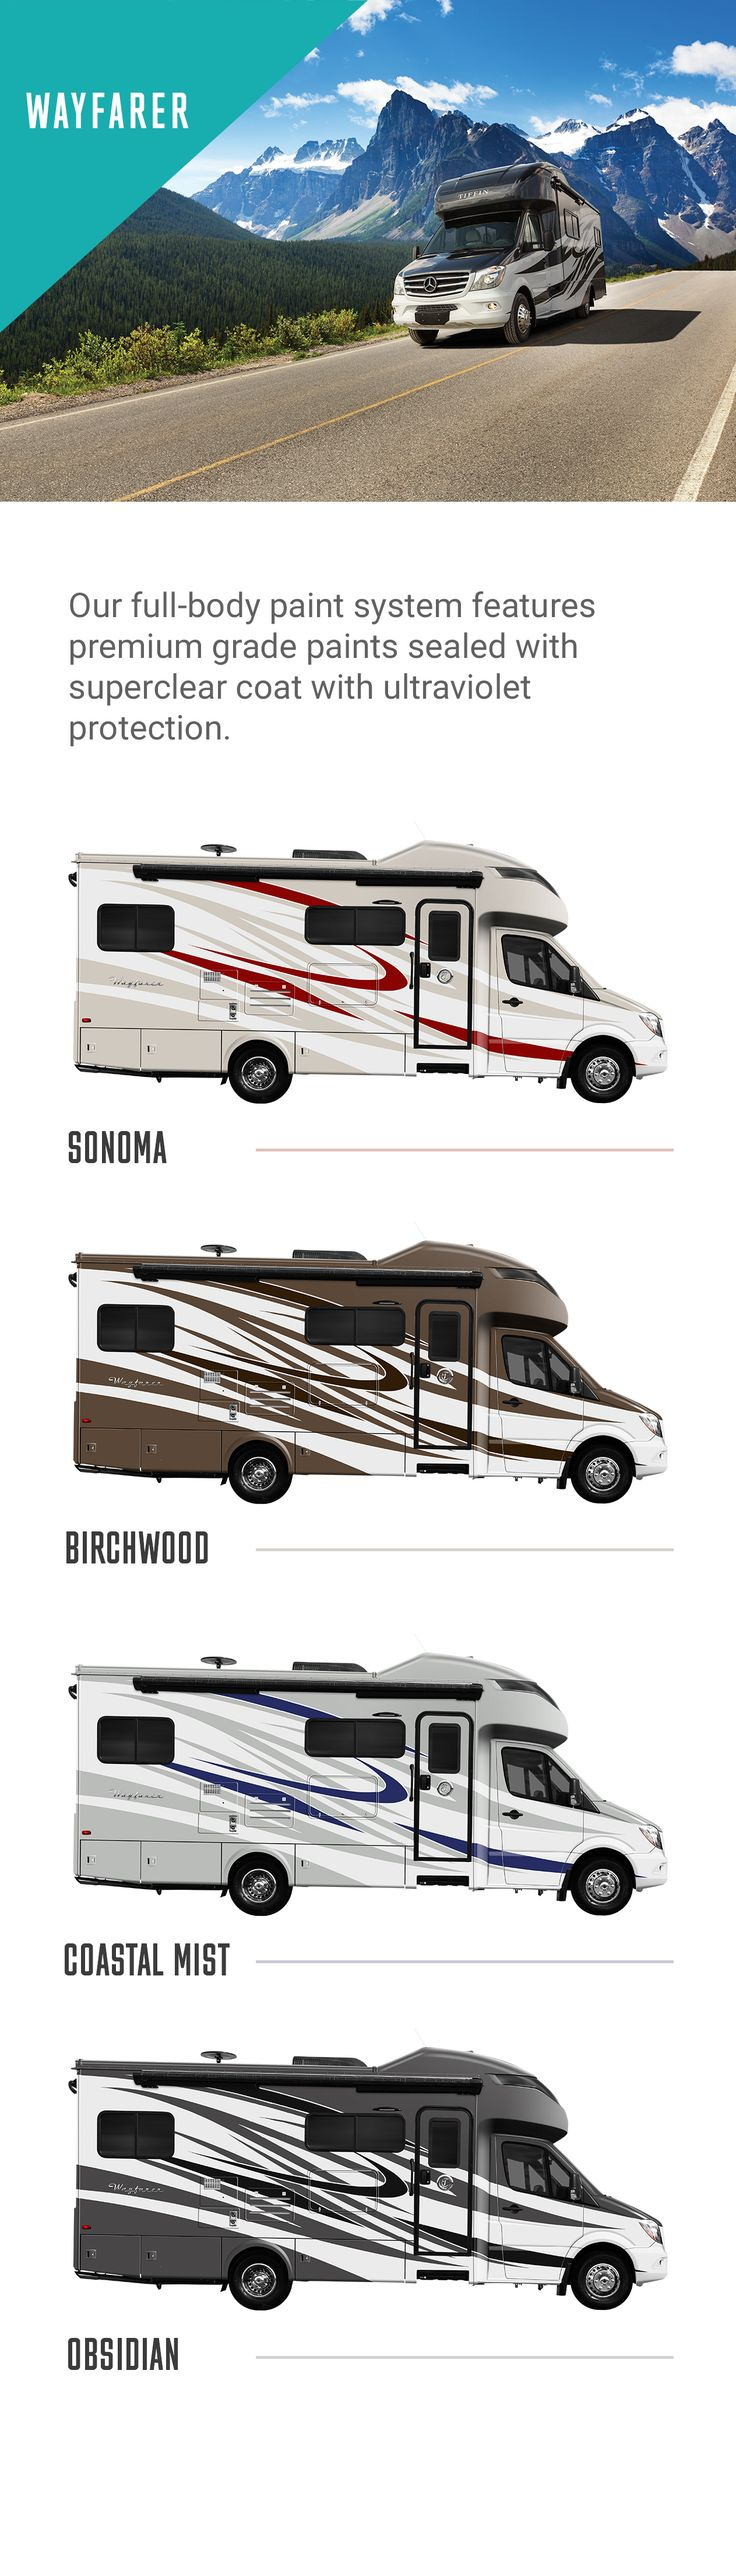 The Tiffin Wayfarer has plenty of options for the Class C RV traveler.